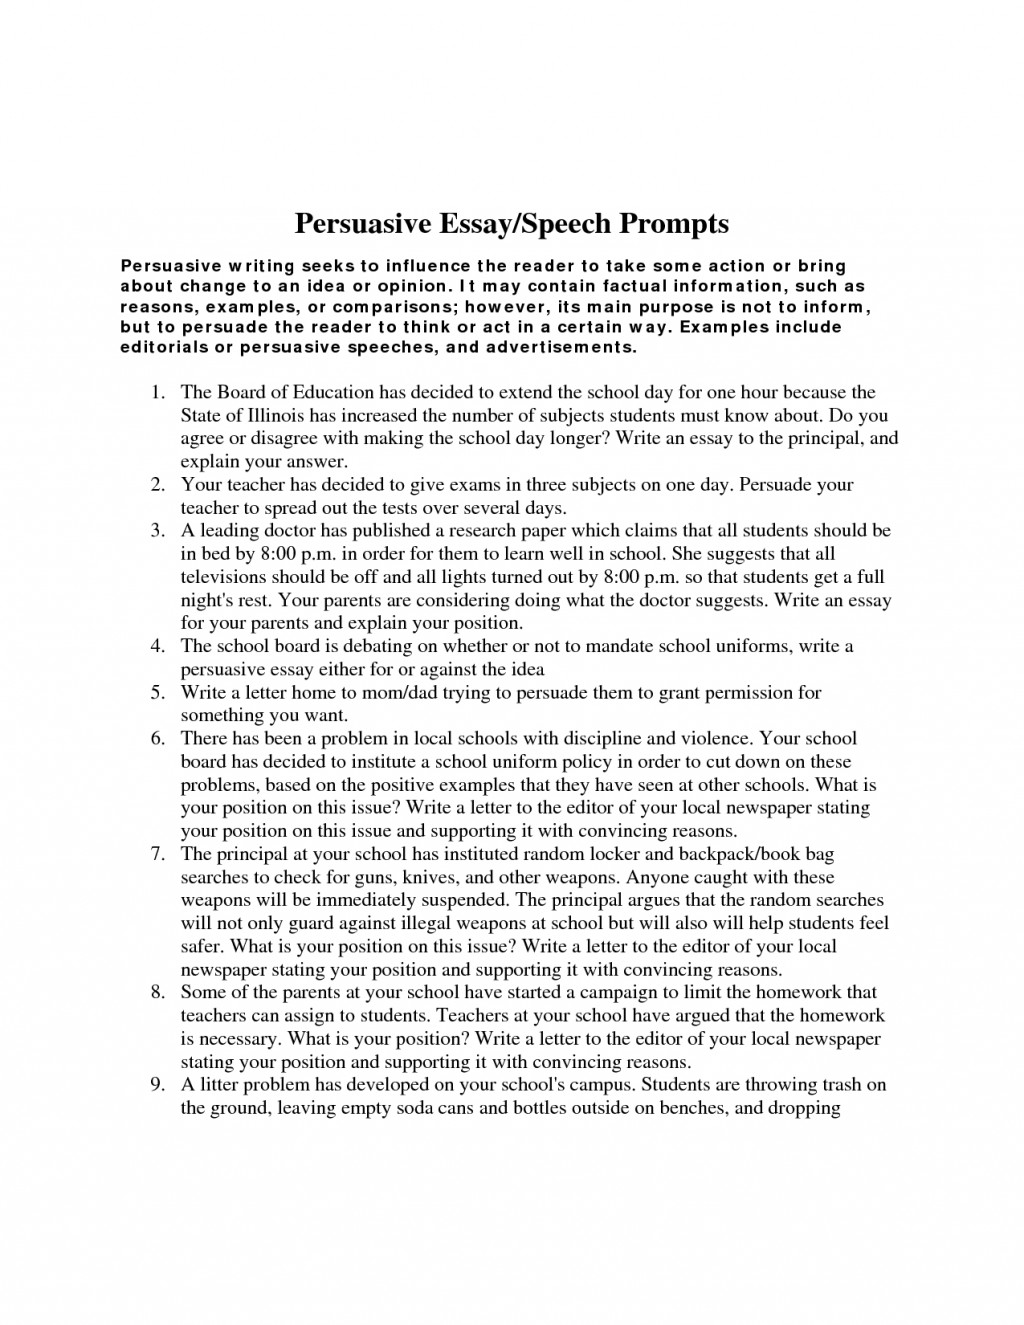 012 Essay Example Persuasive Prompts Informative Remarkable Topics For High School 4th Grade Expository Large